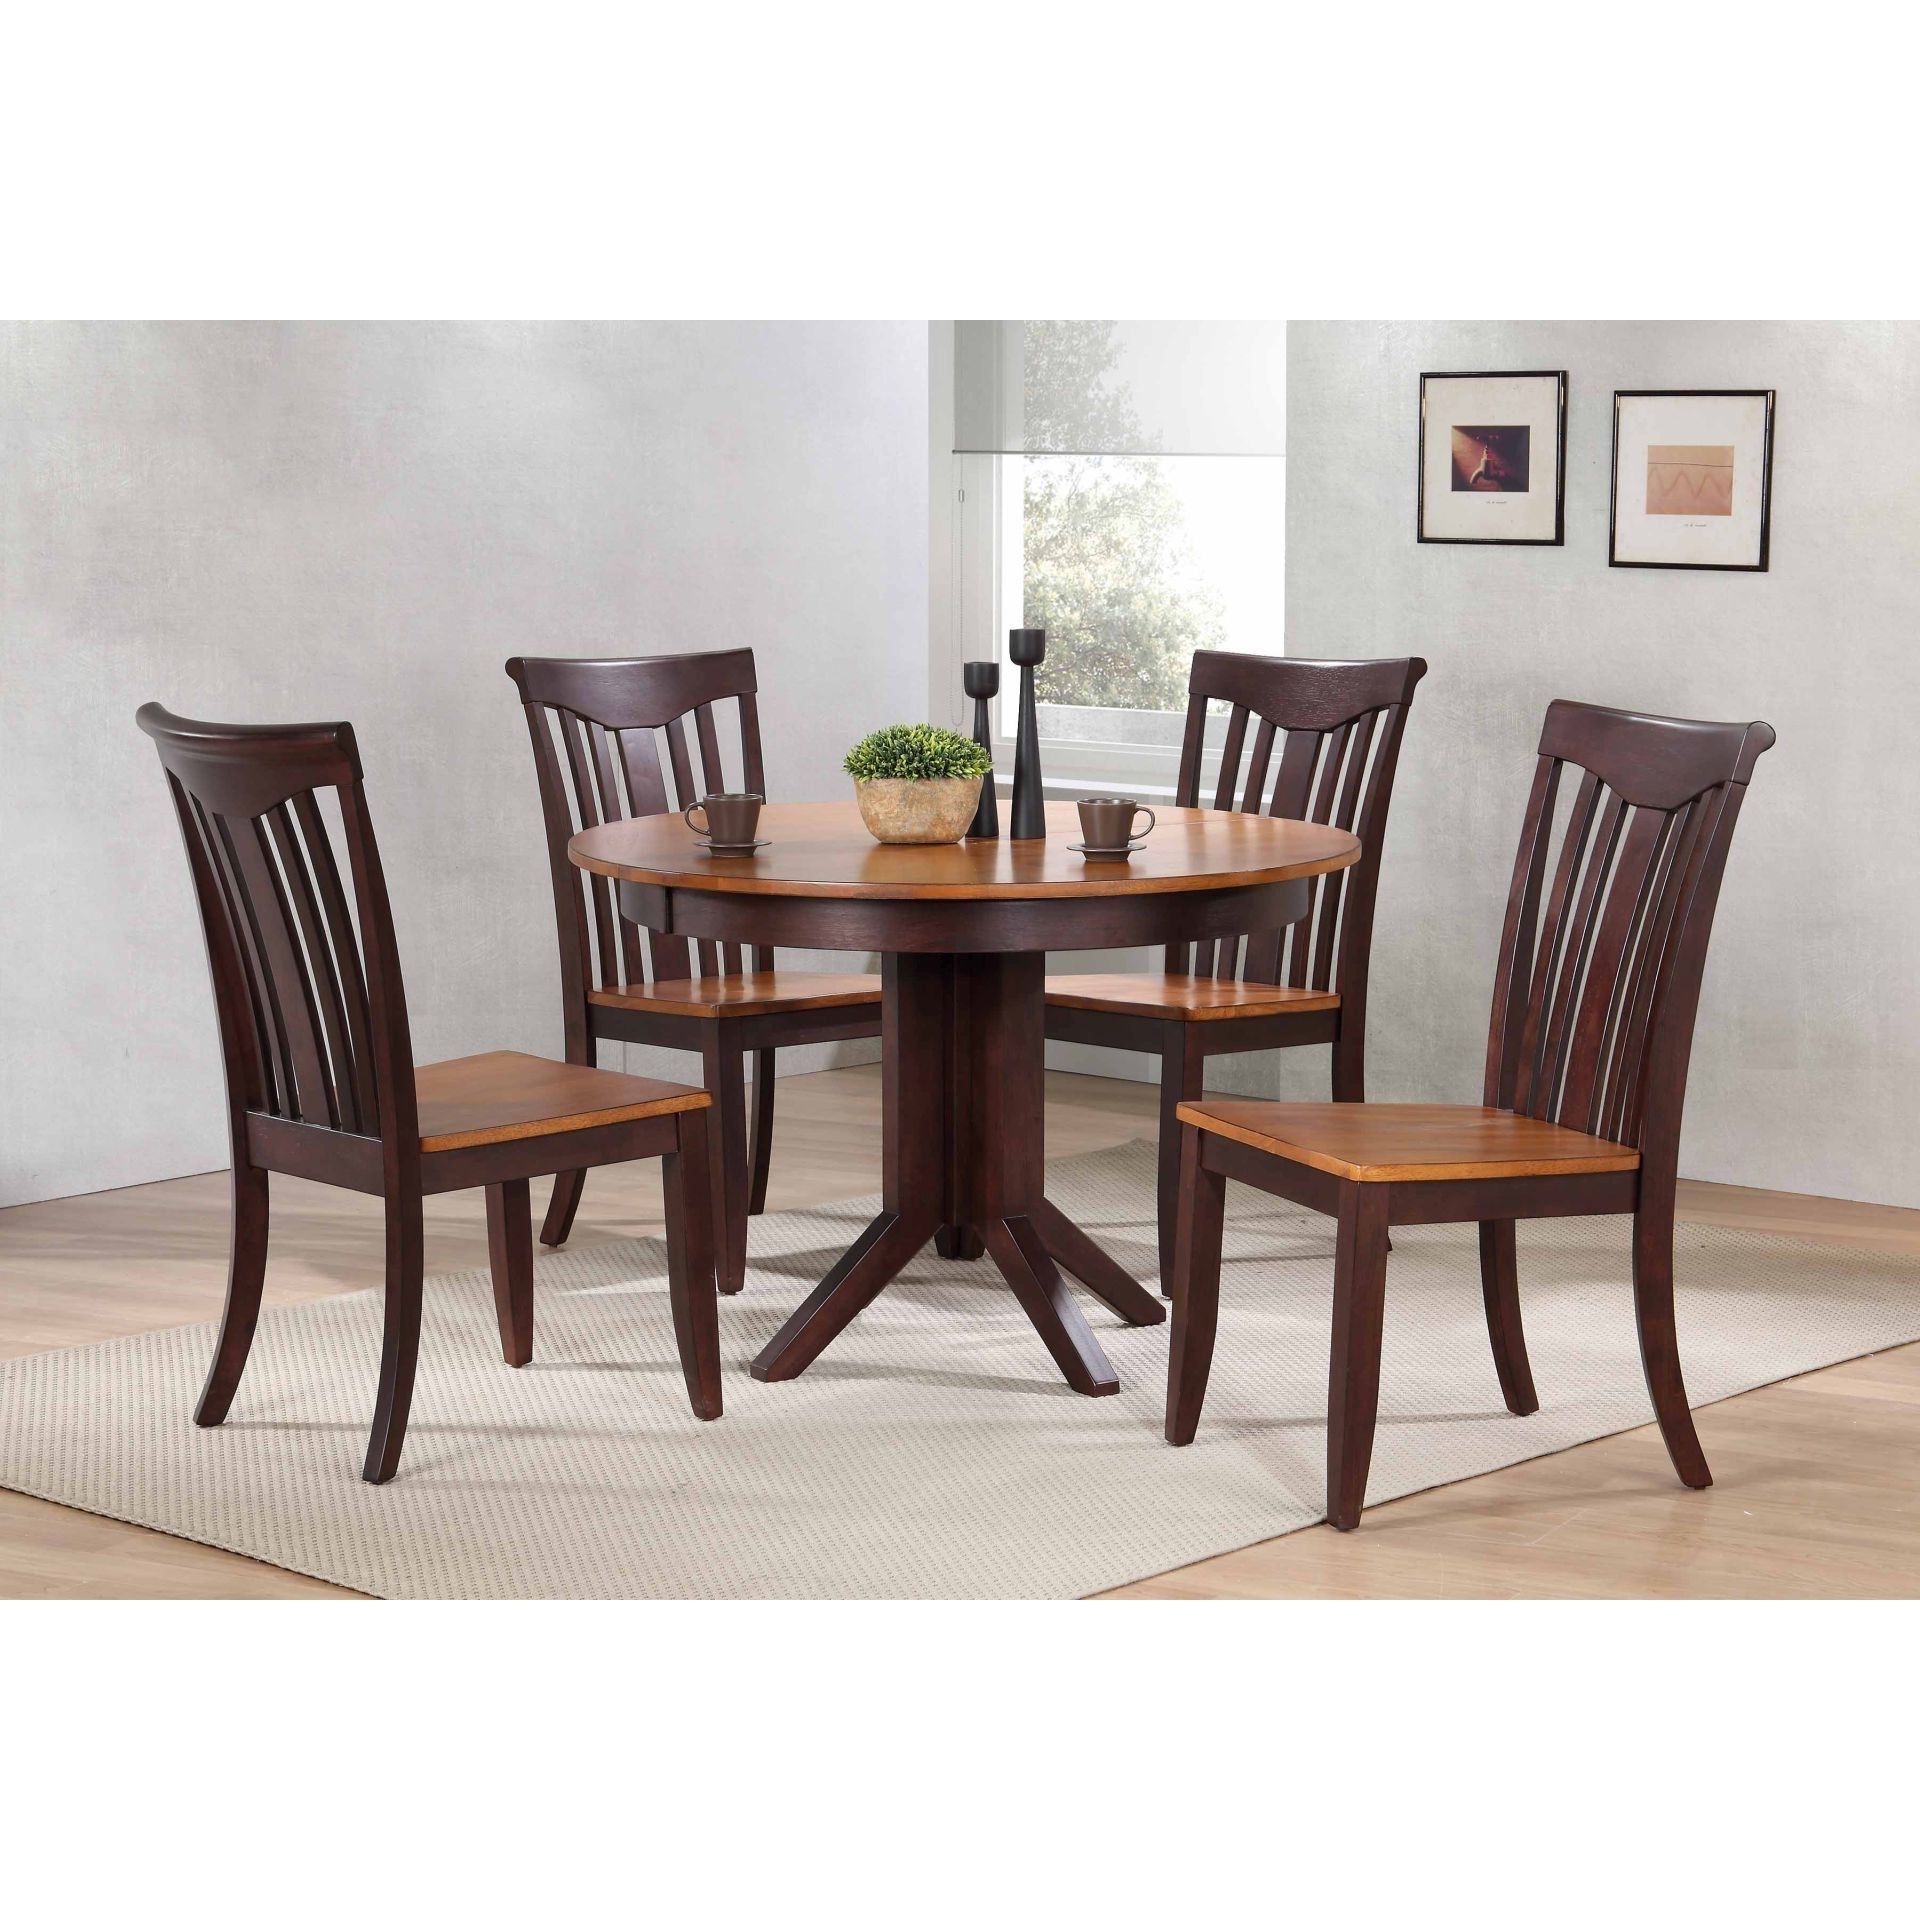 """Widely Used Caden 5 Piece Round Dining Sets With Upholstered Side Chairs With Shop Iconic Furniture Company 45""""x45""""x63"""" Contemporary Whiskey/mocha (View 10 of 25)"""